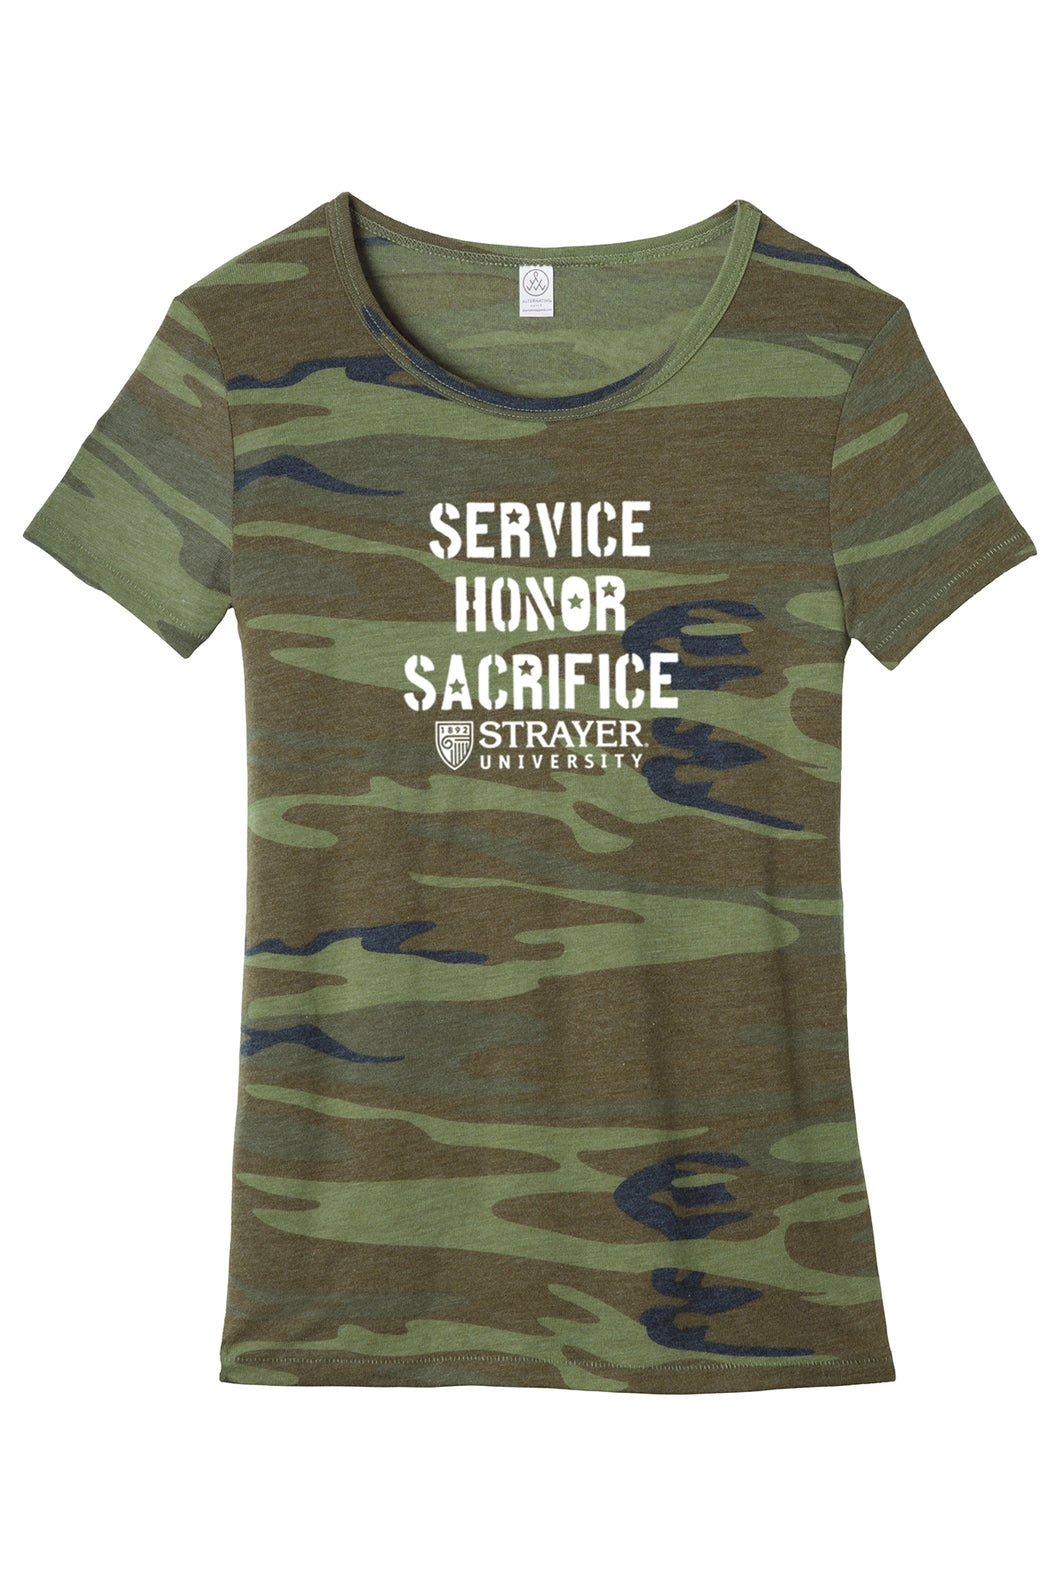 Service Honor Sacrifice - Alternative Women's Eco-Jersey Ideal Tee - Camo